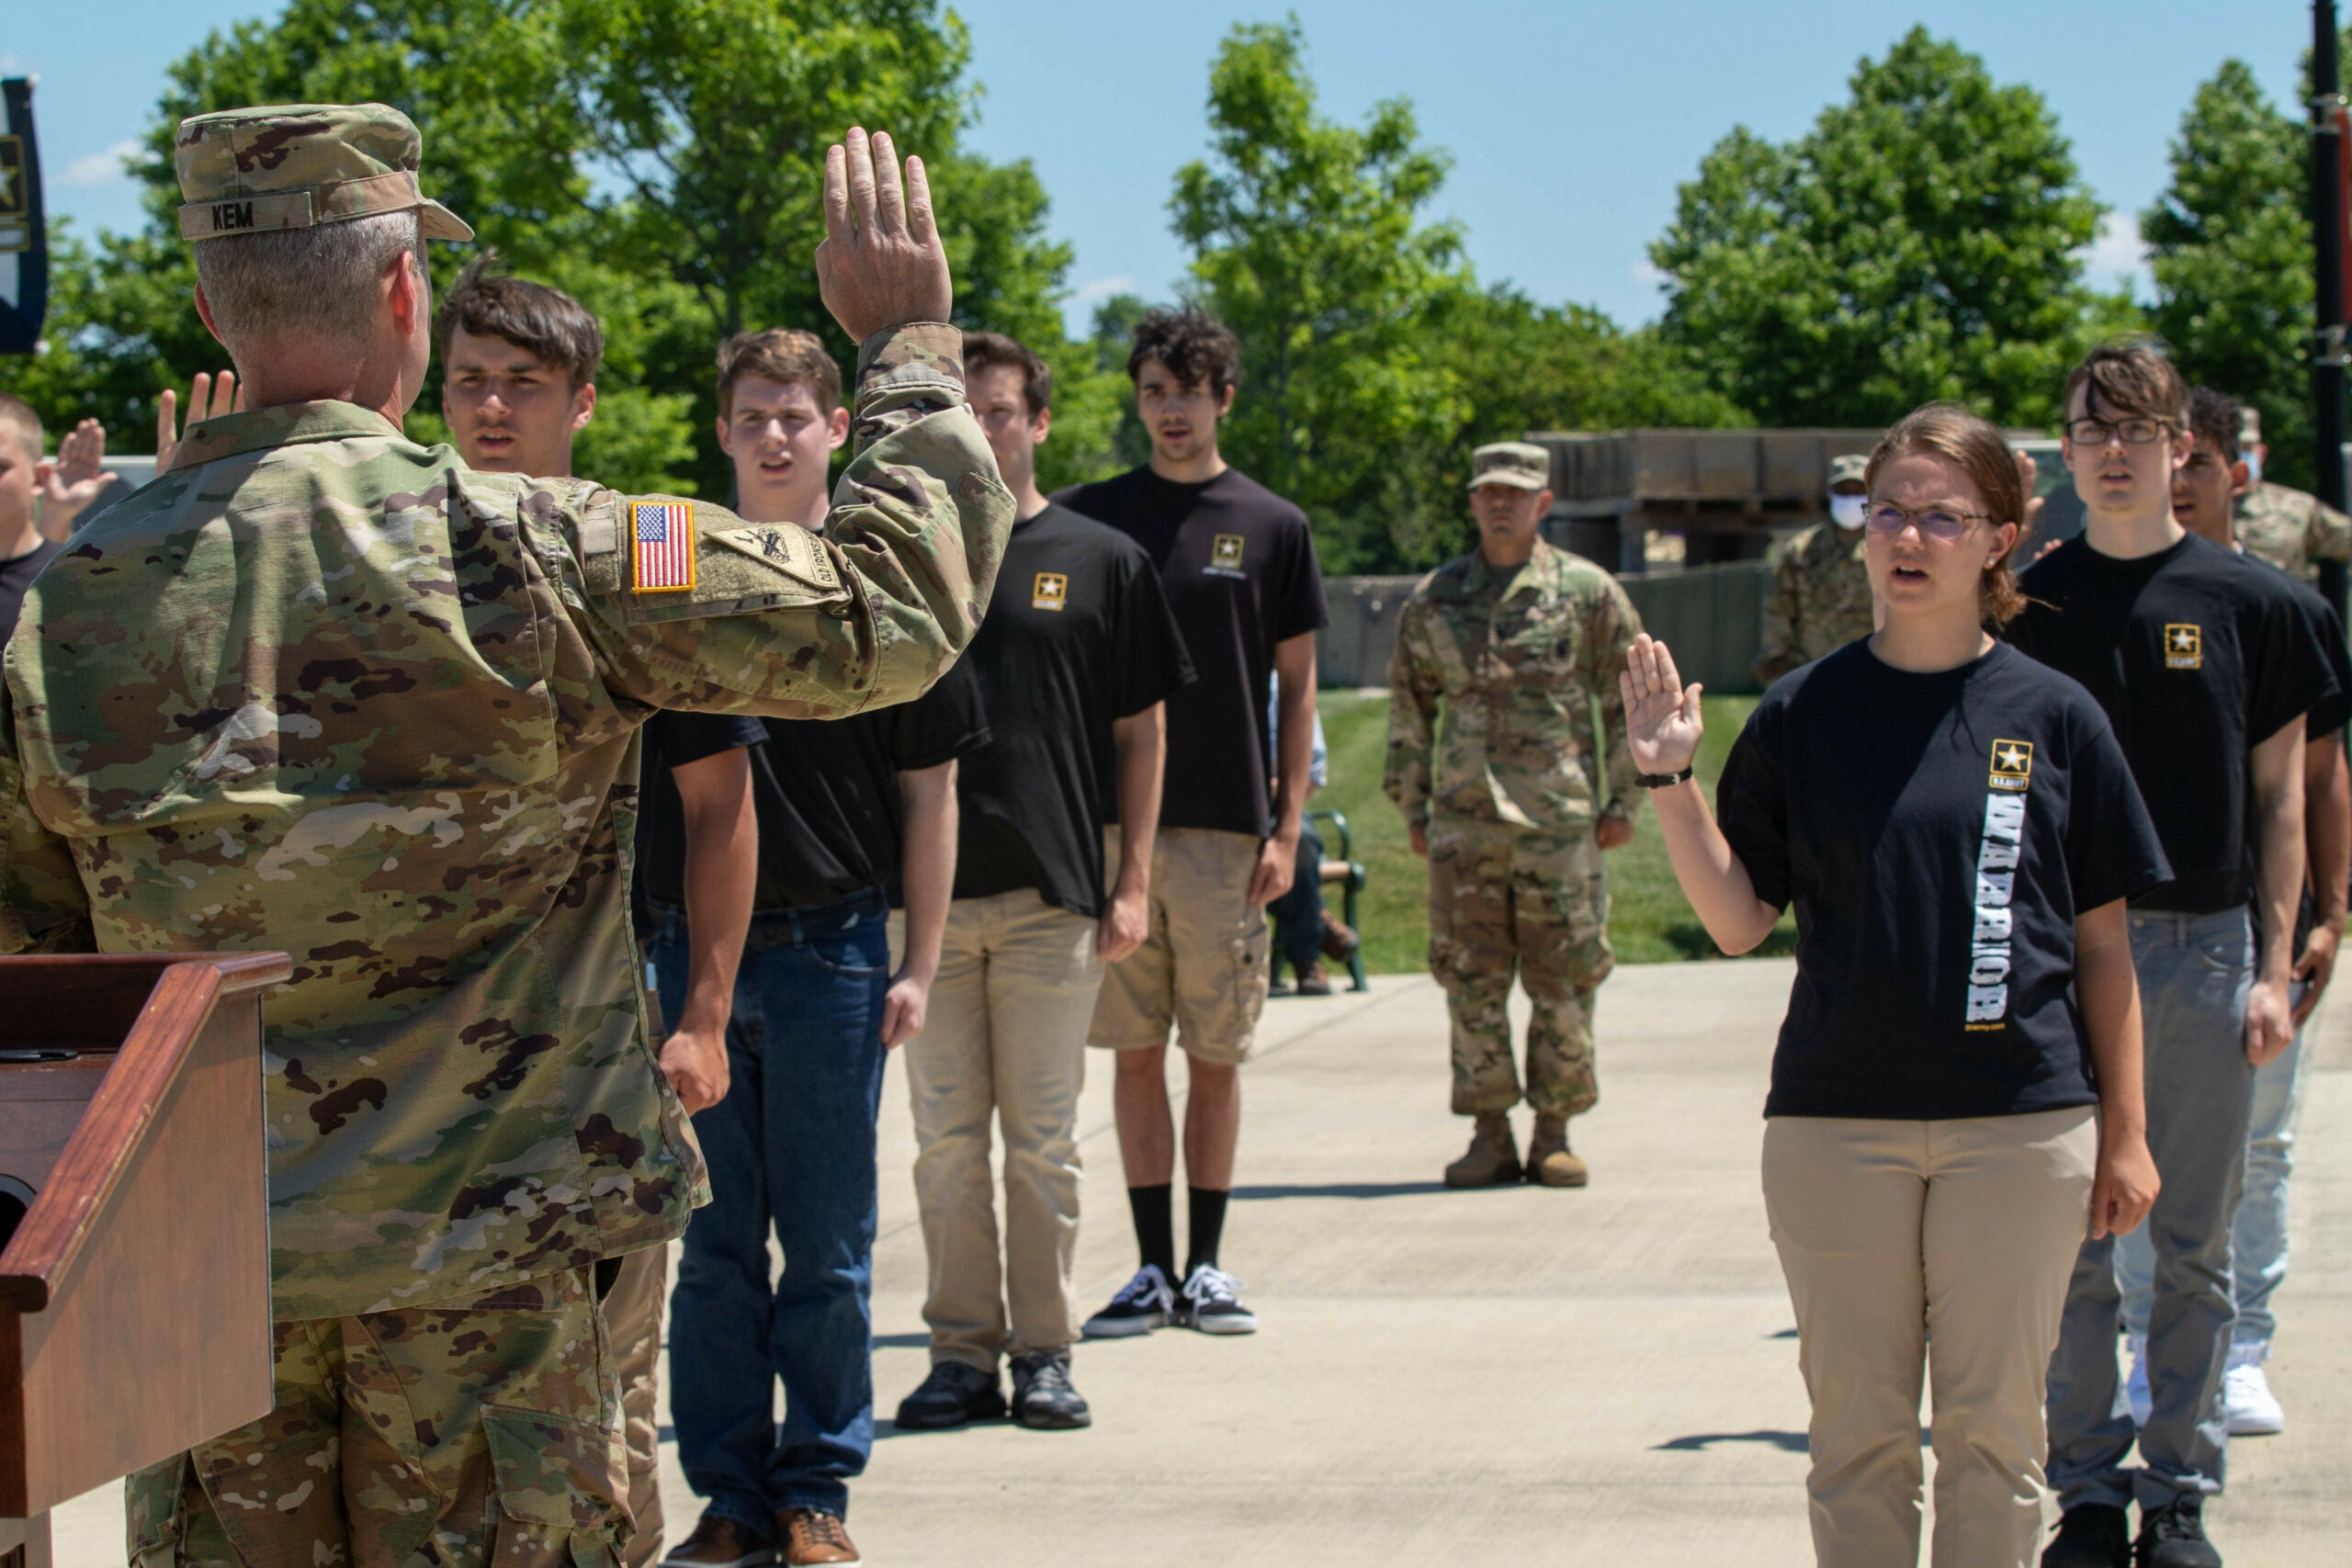 The Army on its slight increase in recruiting women and minorities: Please clap